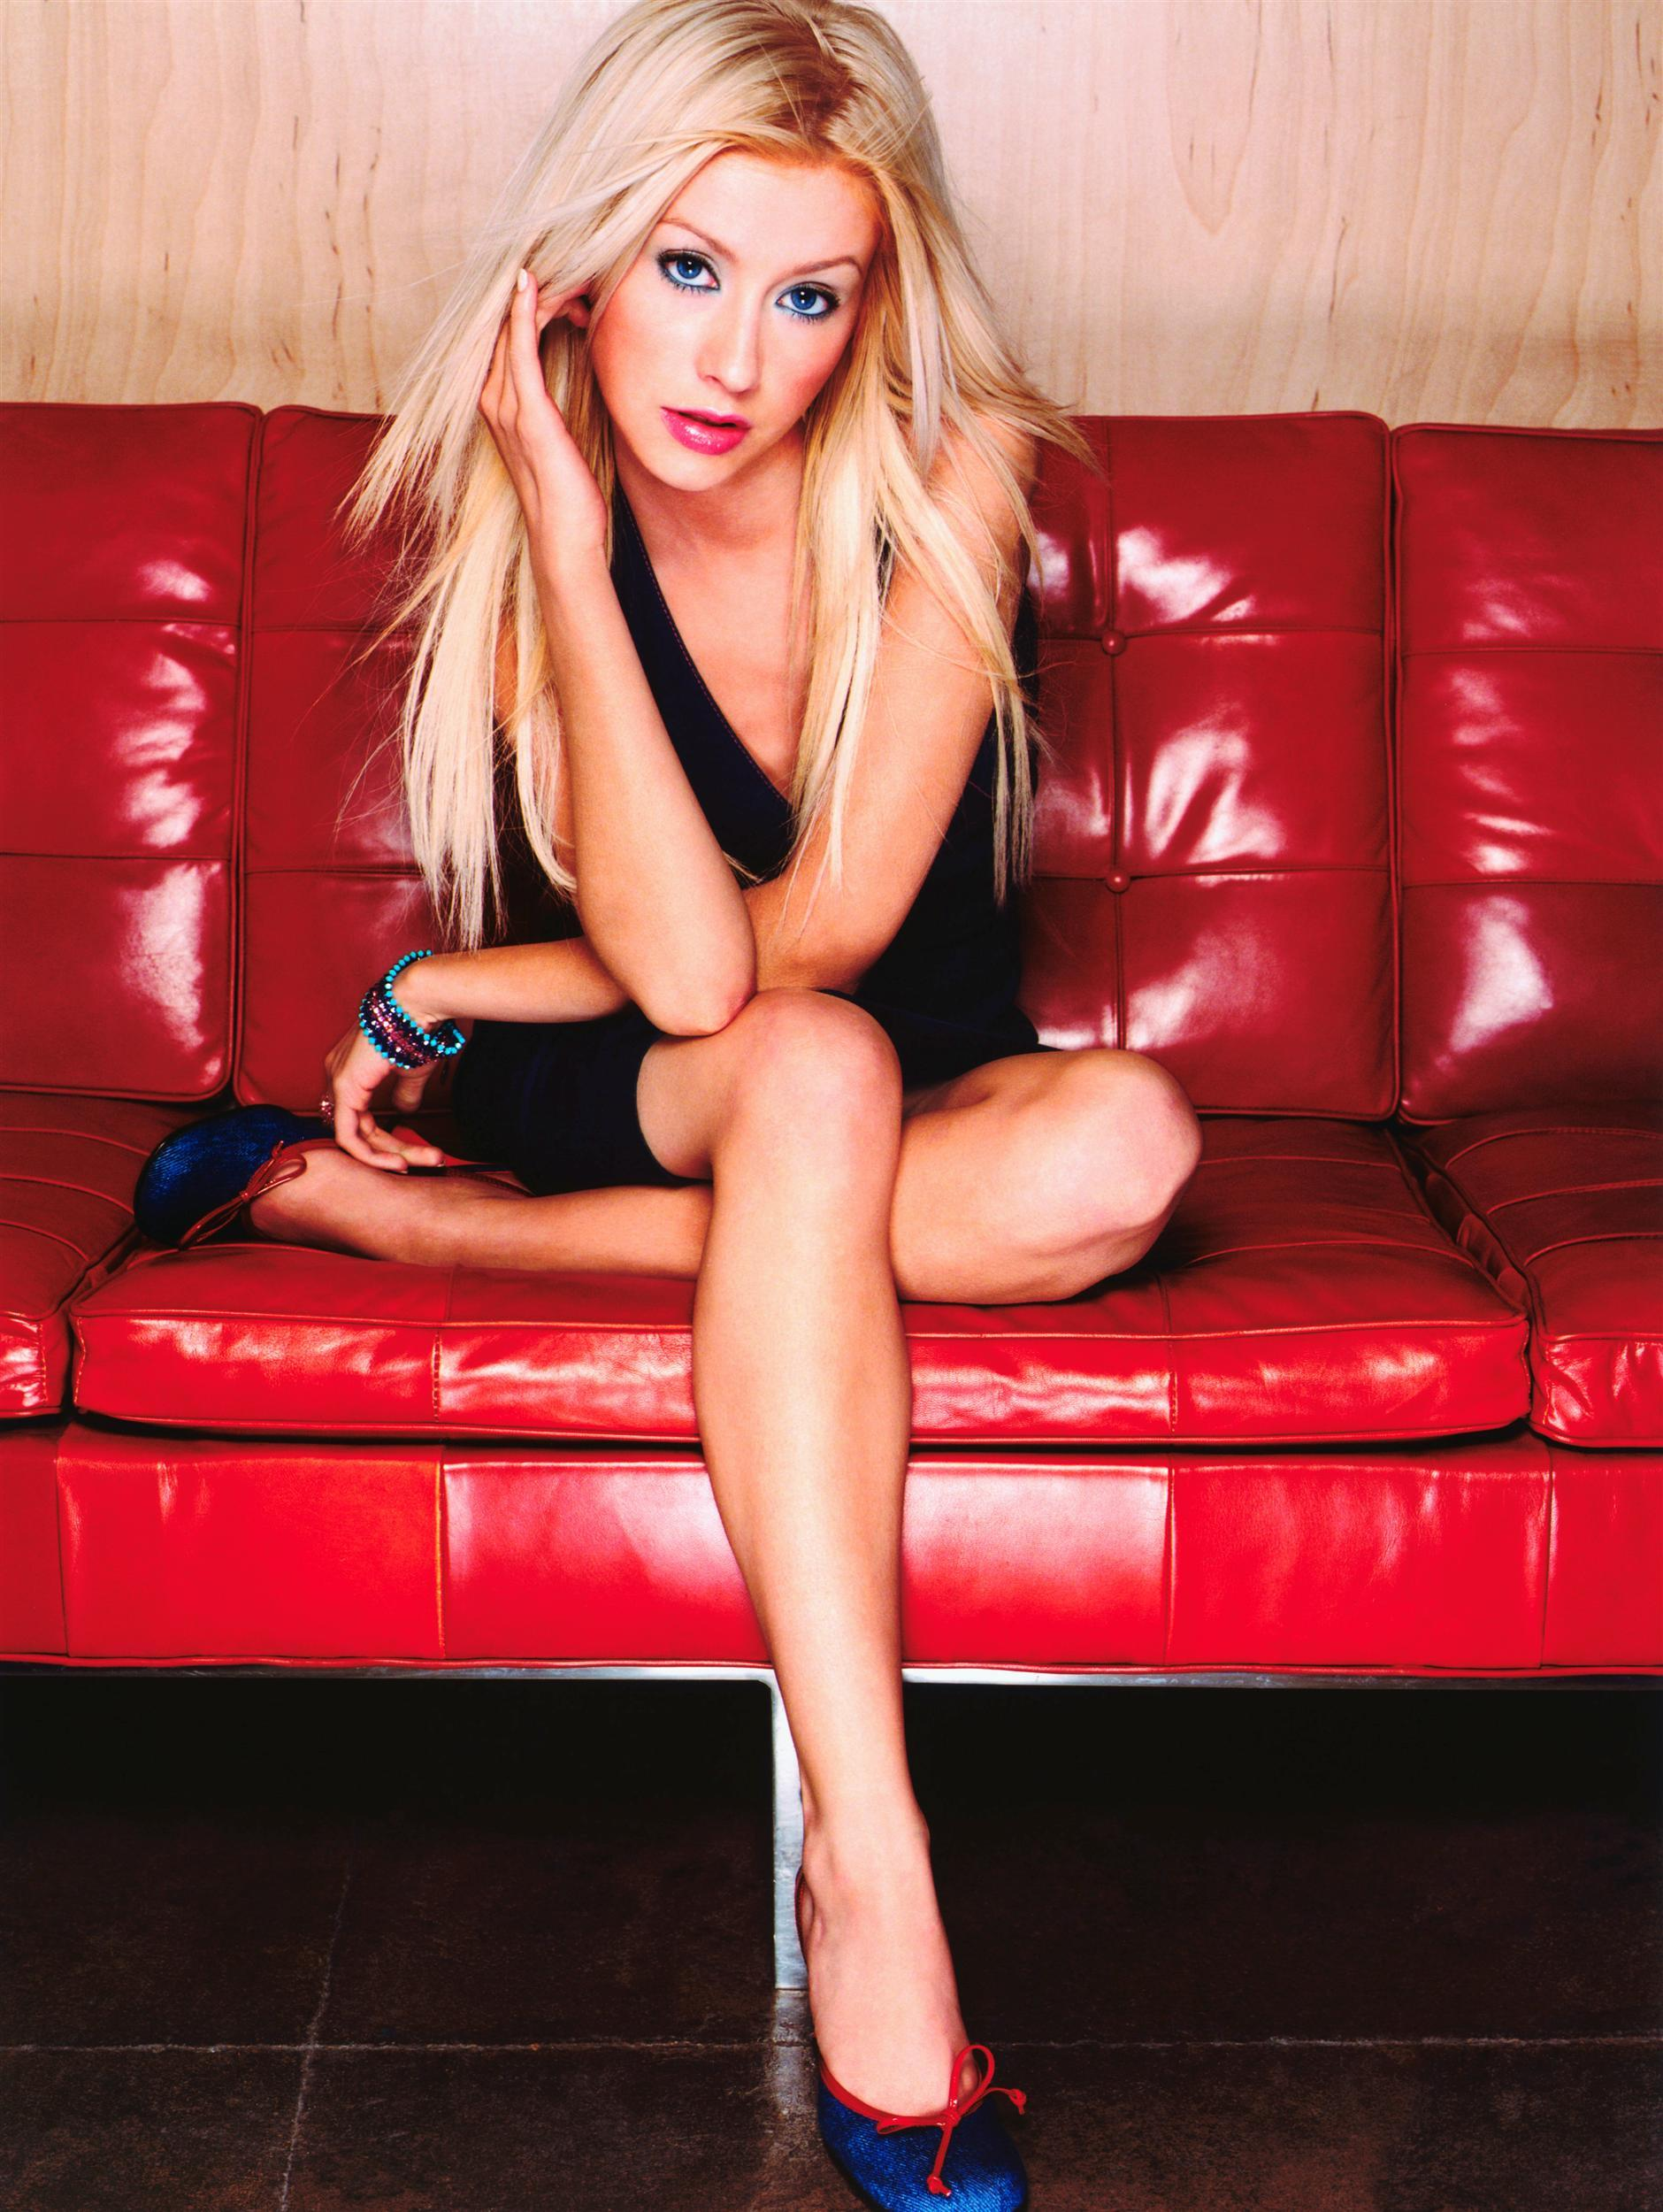 55469_Christina_Aguilera-019587_Kenneth_Willardt_photoshoot4_2000_122_642lo.jpg